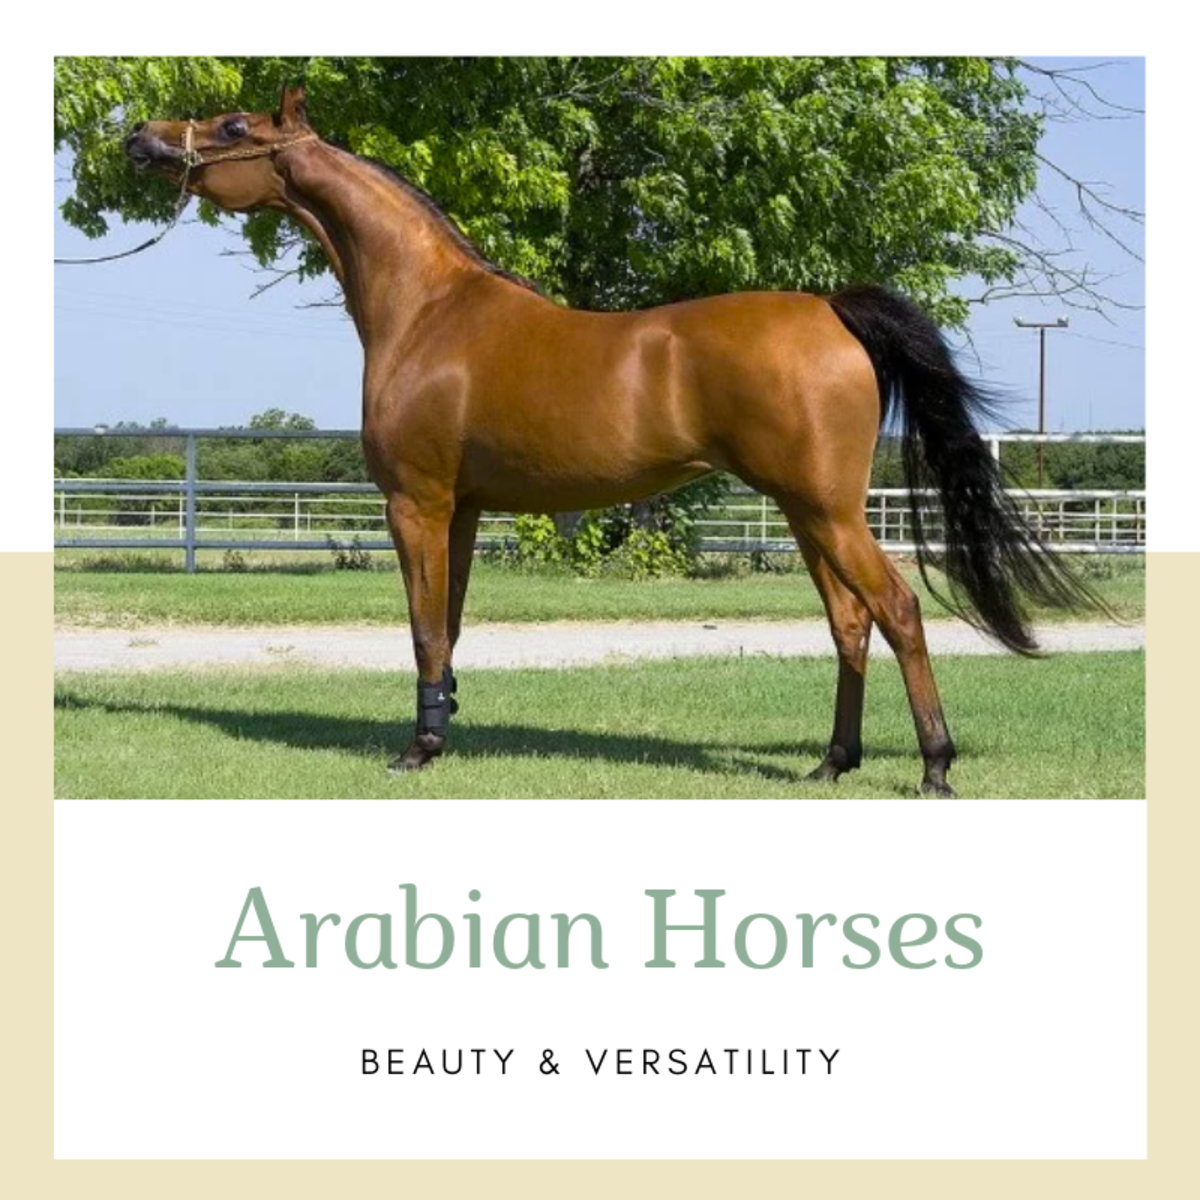 The Arabian horse is one of the most popular breeds out there.